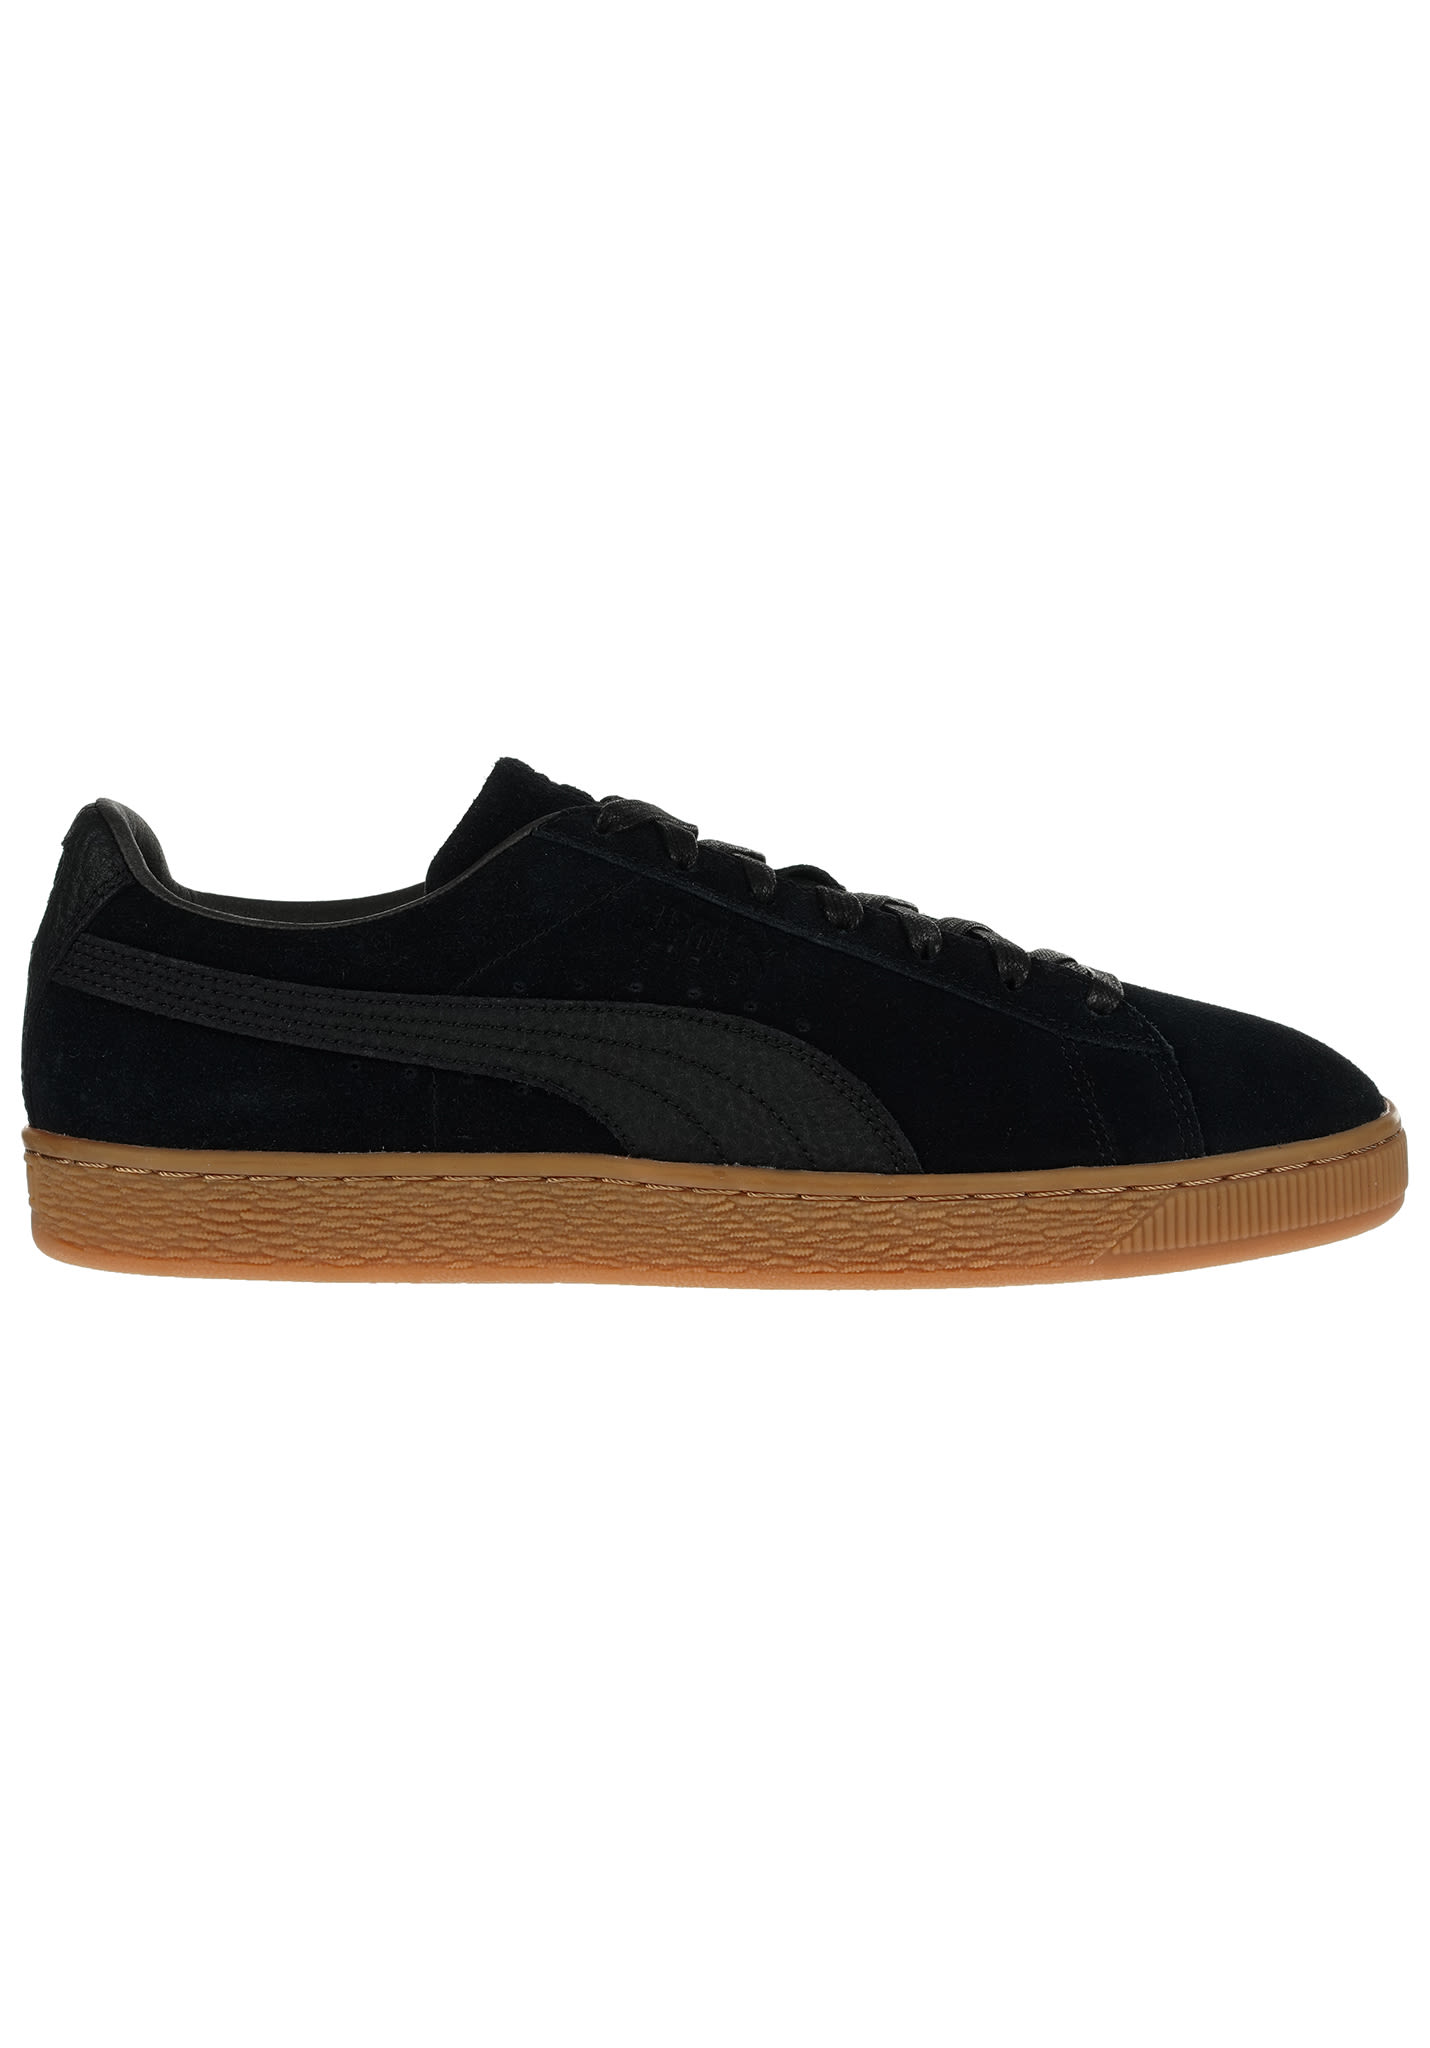 Puma Suede Classic Natural Warmth - Baskets - Noir - Planet Sports 85dacef75